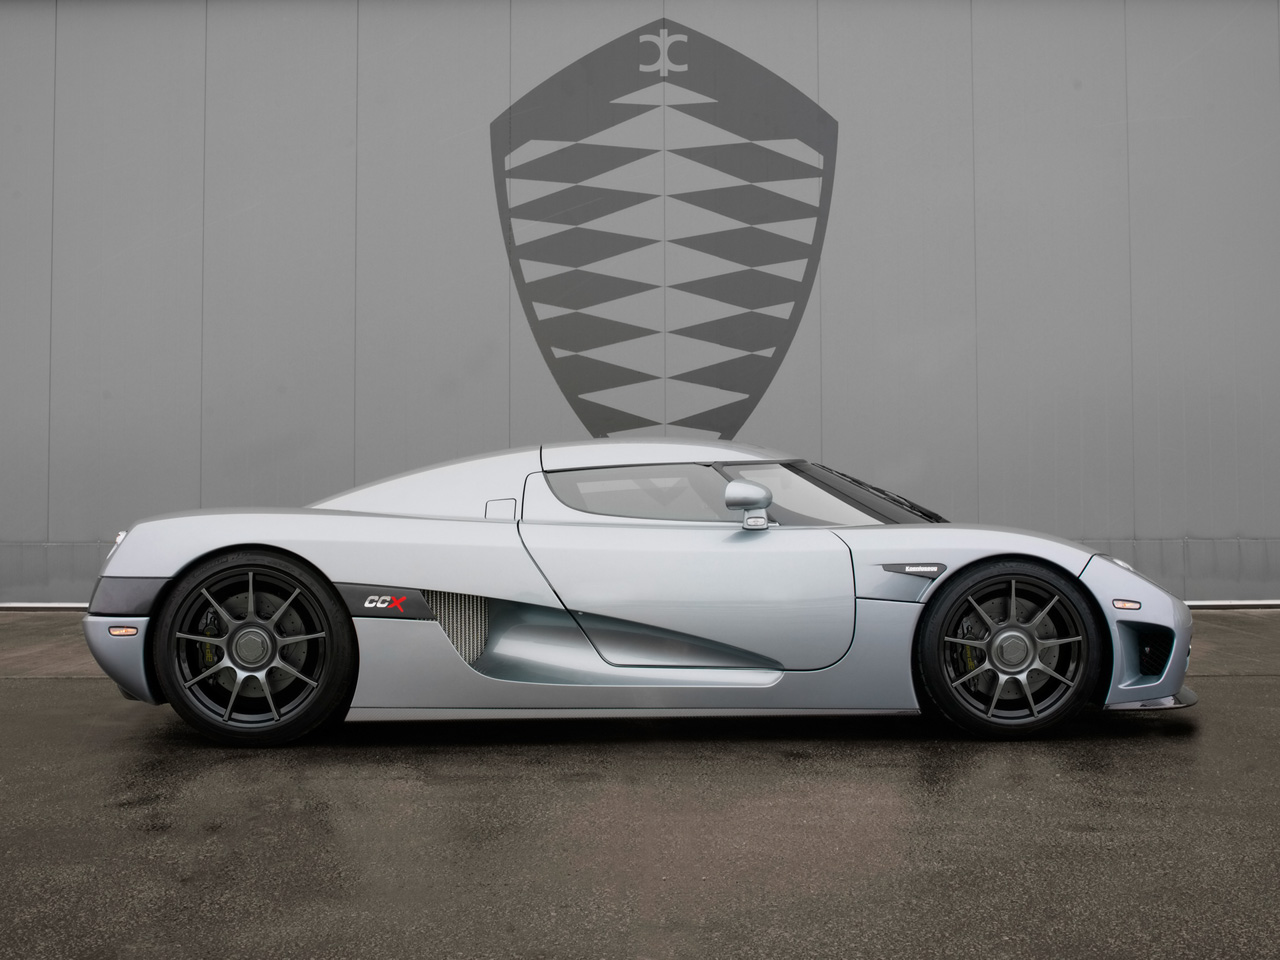 The Koenigsegg CCX Car Motor